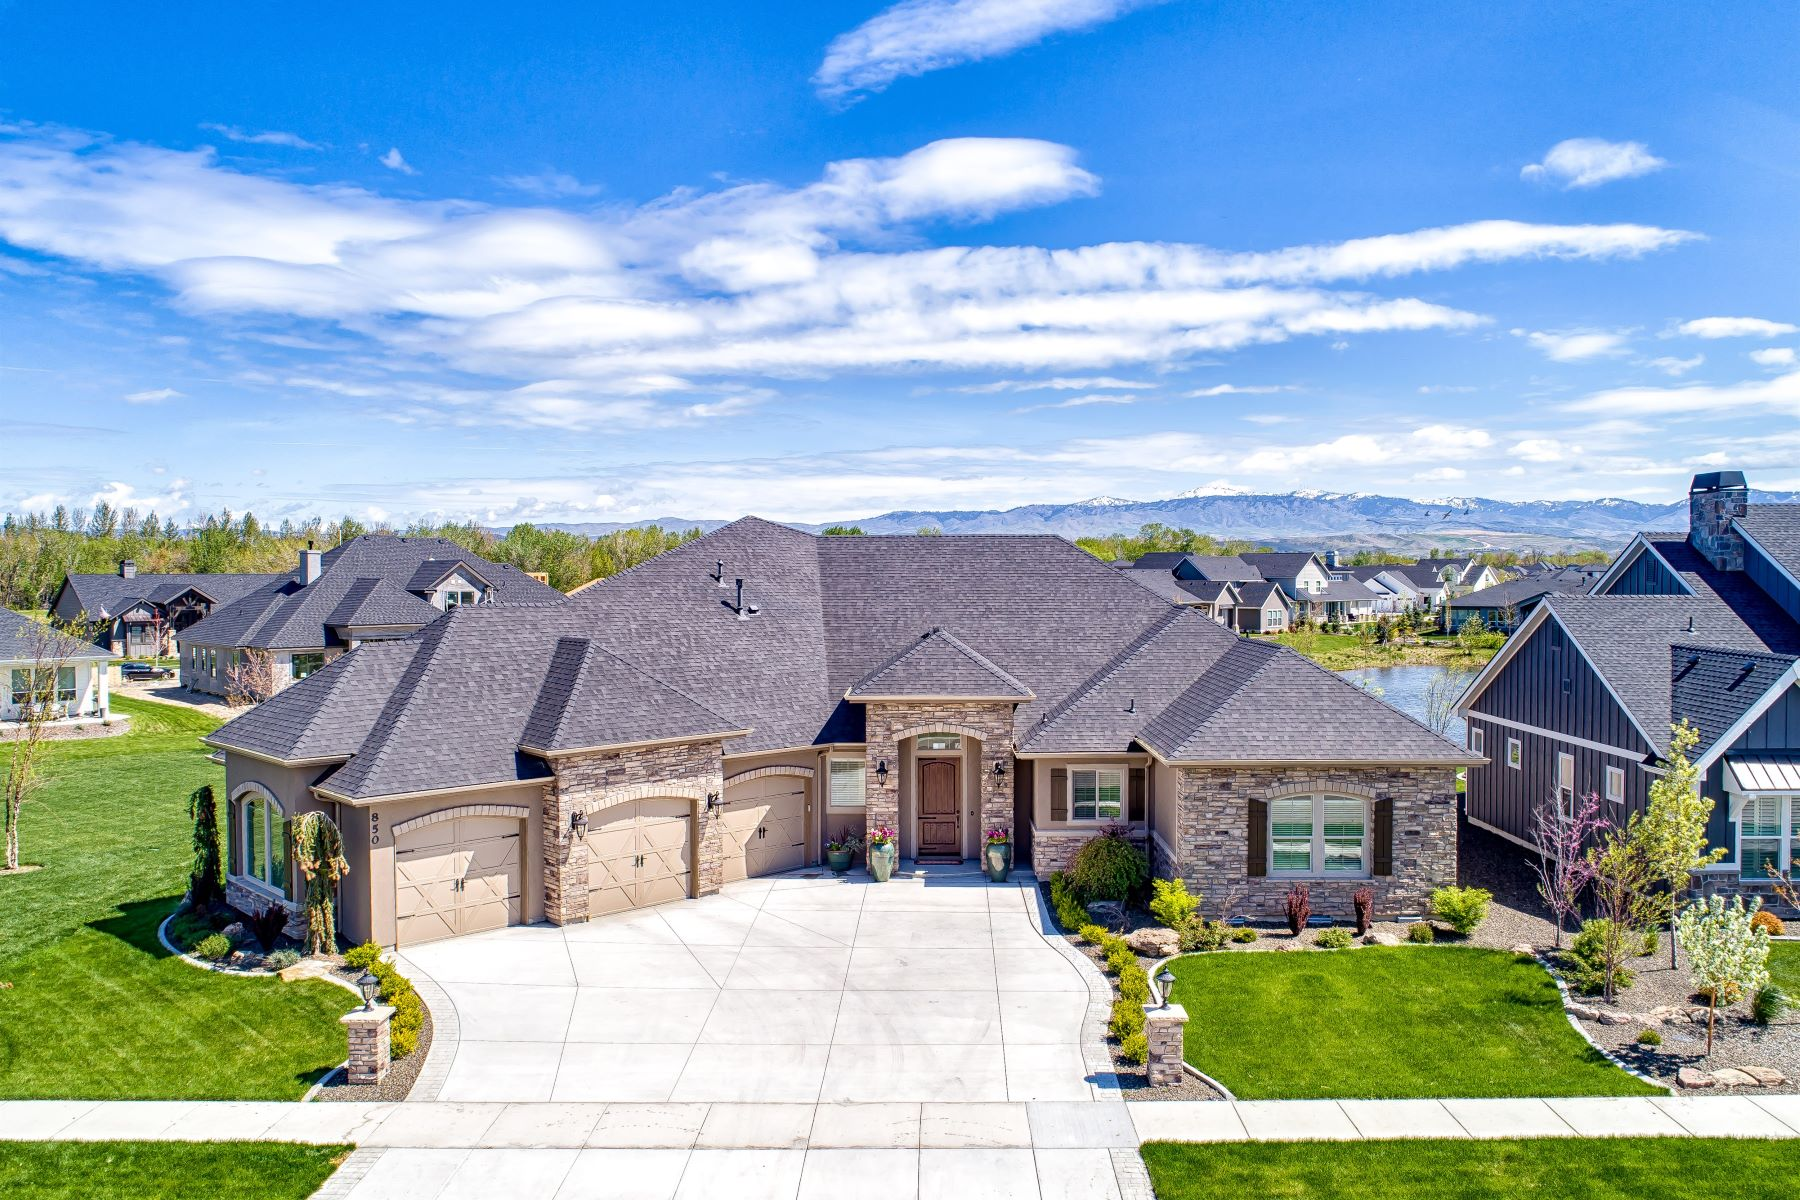 Single Family Home for Active at 850 Heron Pointe, Eagle 850 S Heron Pointe Eagle, Idaho 83616 United States